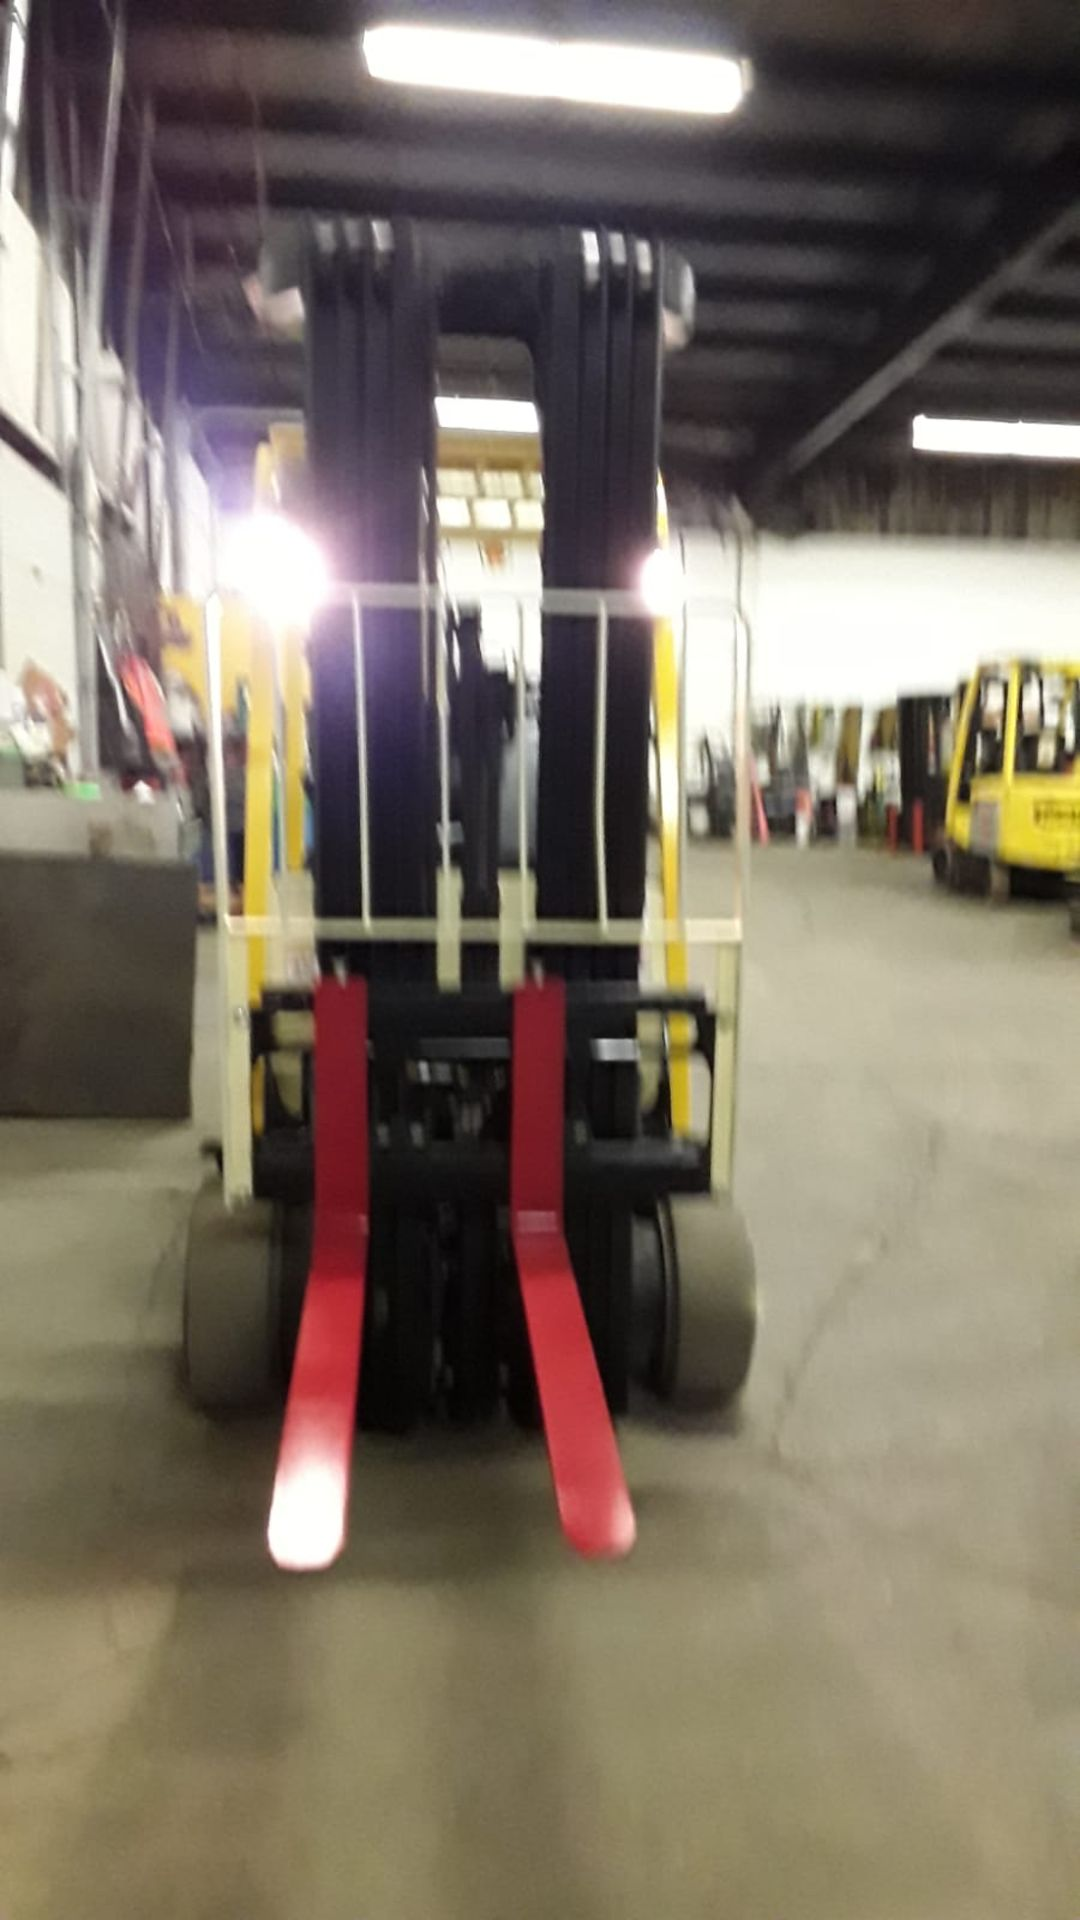 FREE CUSTOMS - 2011 Hyster 5000lbs Capacity Forklift Electric with 4-STAGE MAST with sideshift - Image 2 of 3